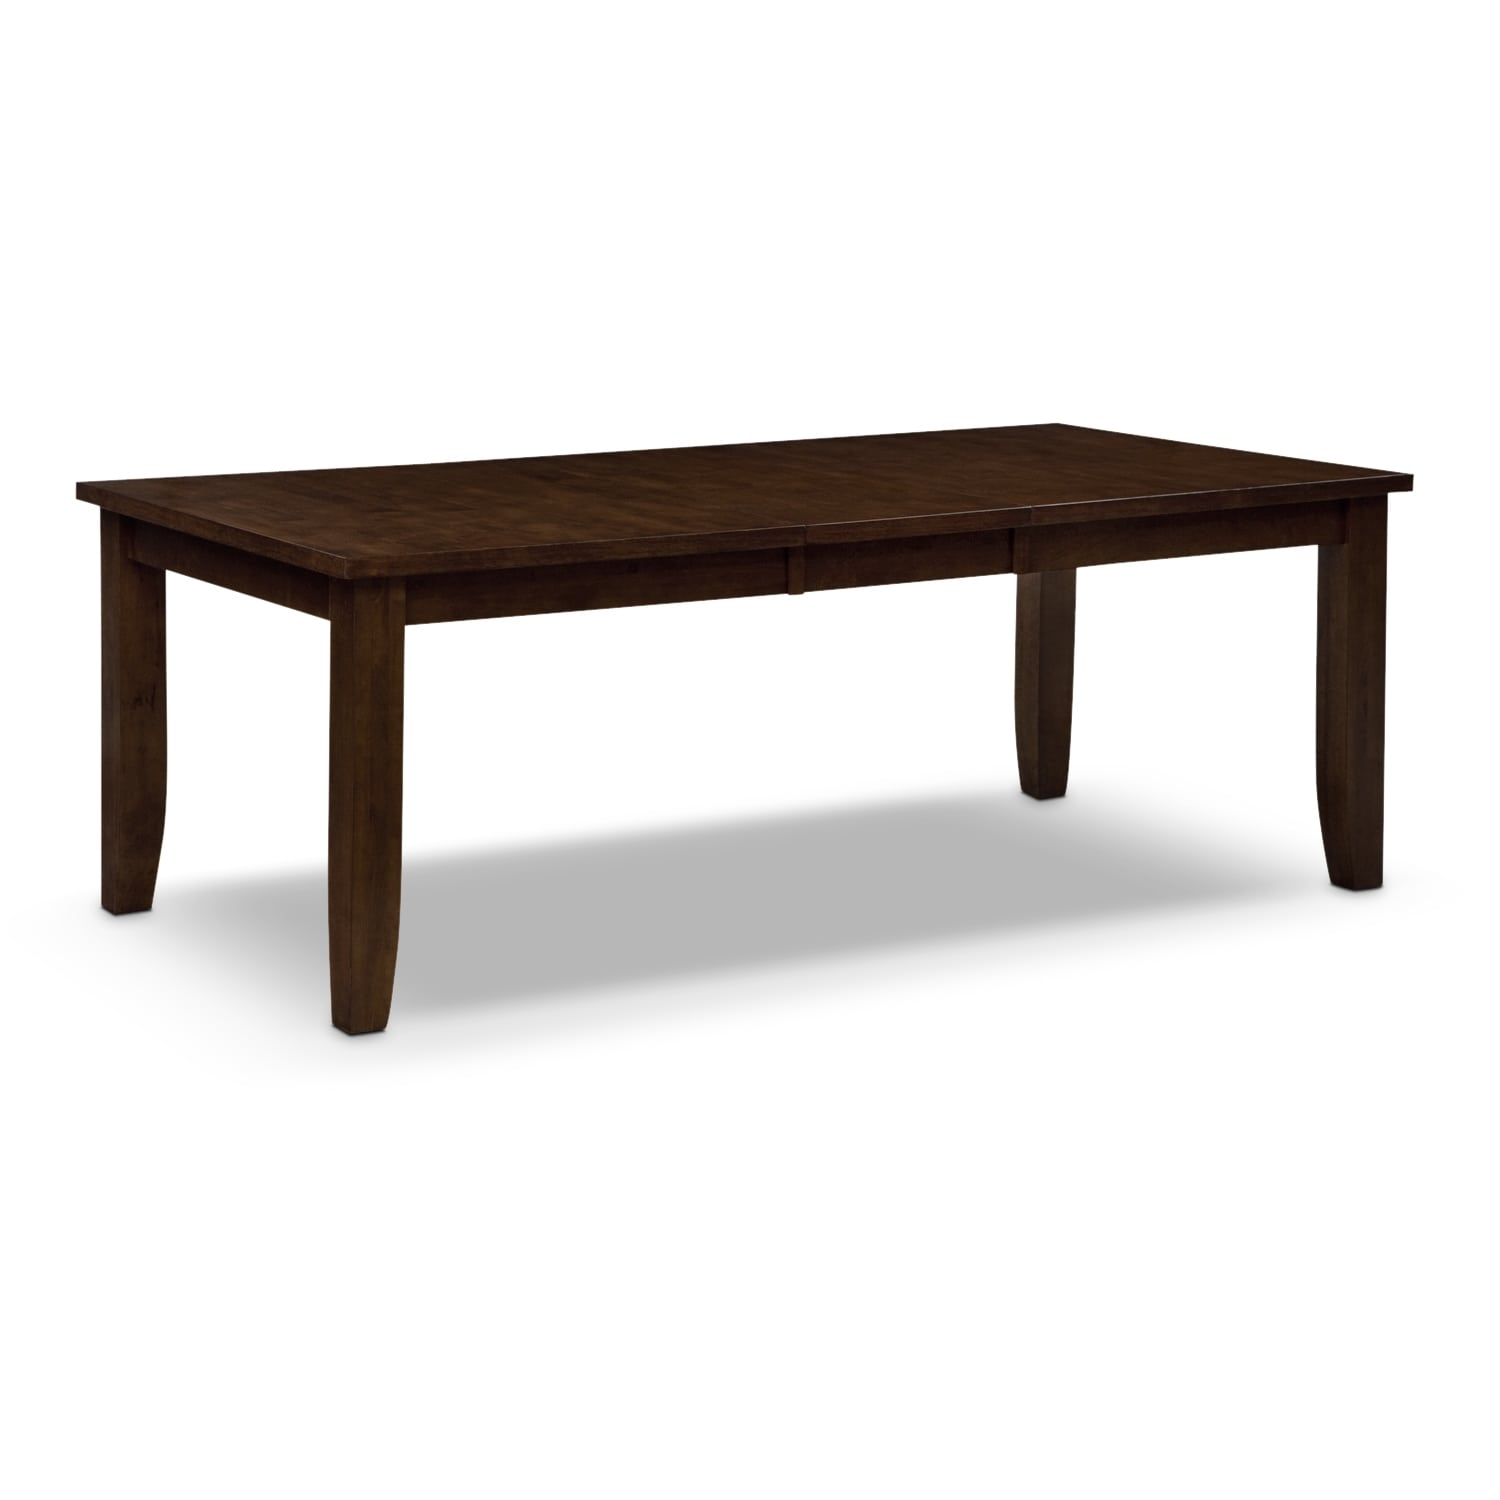 Abaco dining table brown american signature furniture for Signature furniture